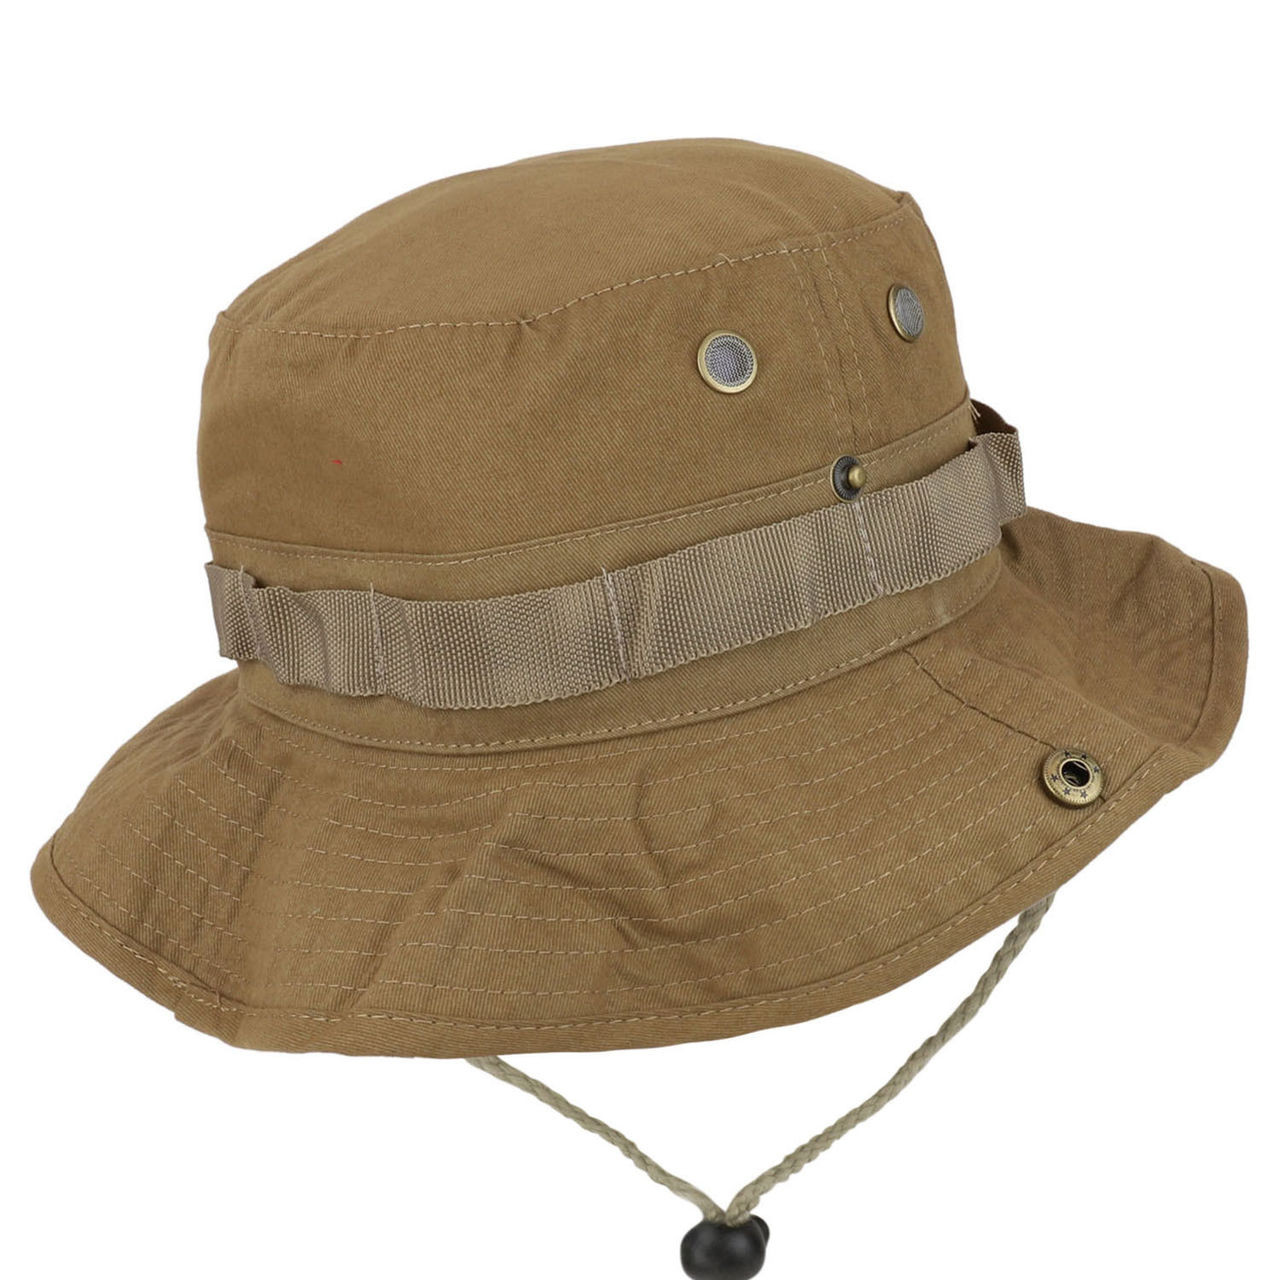 dced475b0a2 ... 6771 - 100% Cotton Eagle Crest Boonie Hat - OSFM - Coyote ...